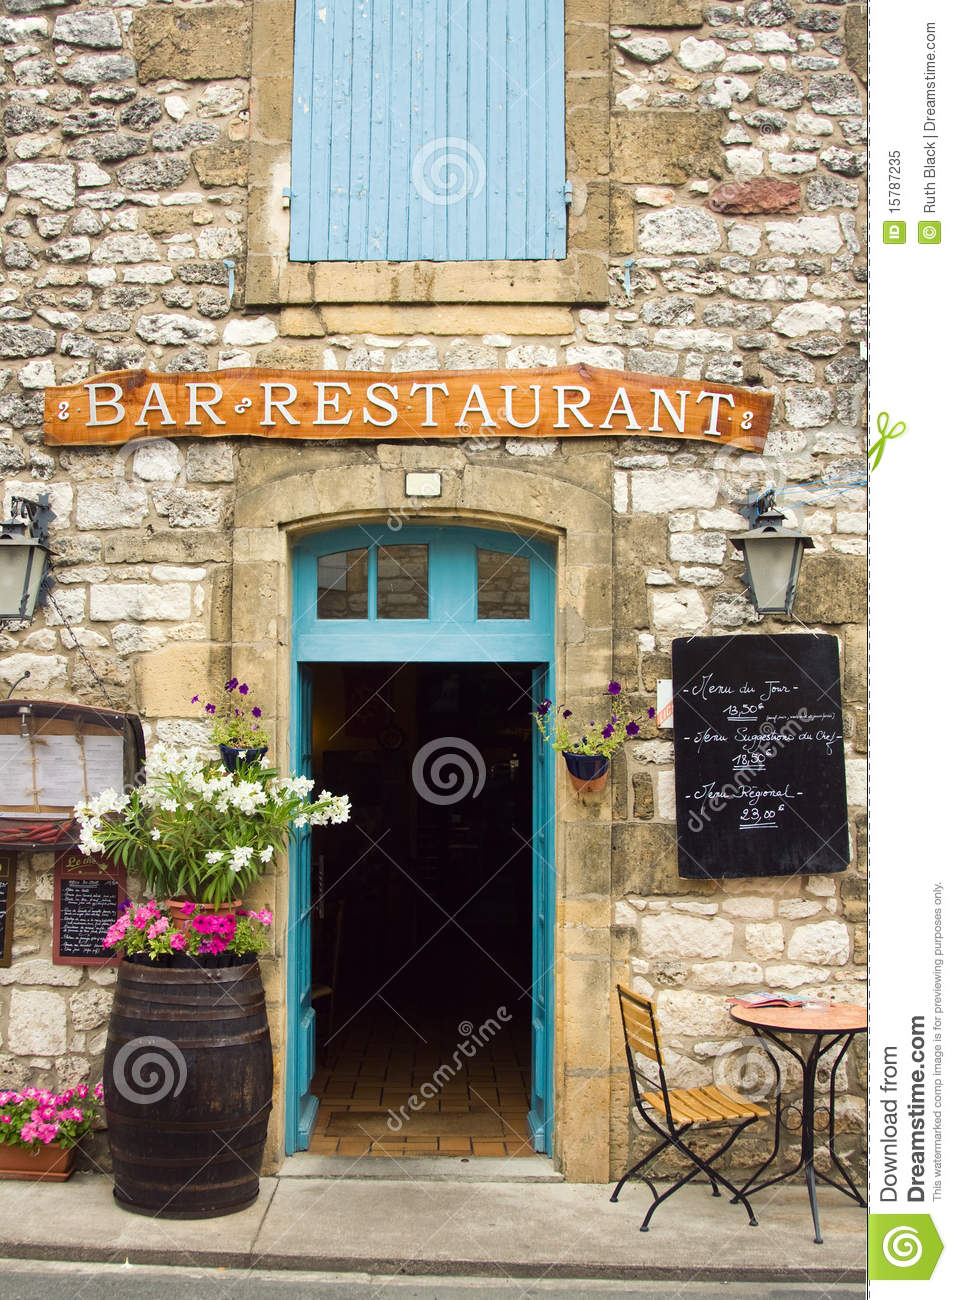 Restaurant in the Dordogne region of France